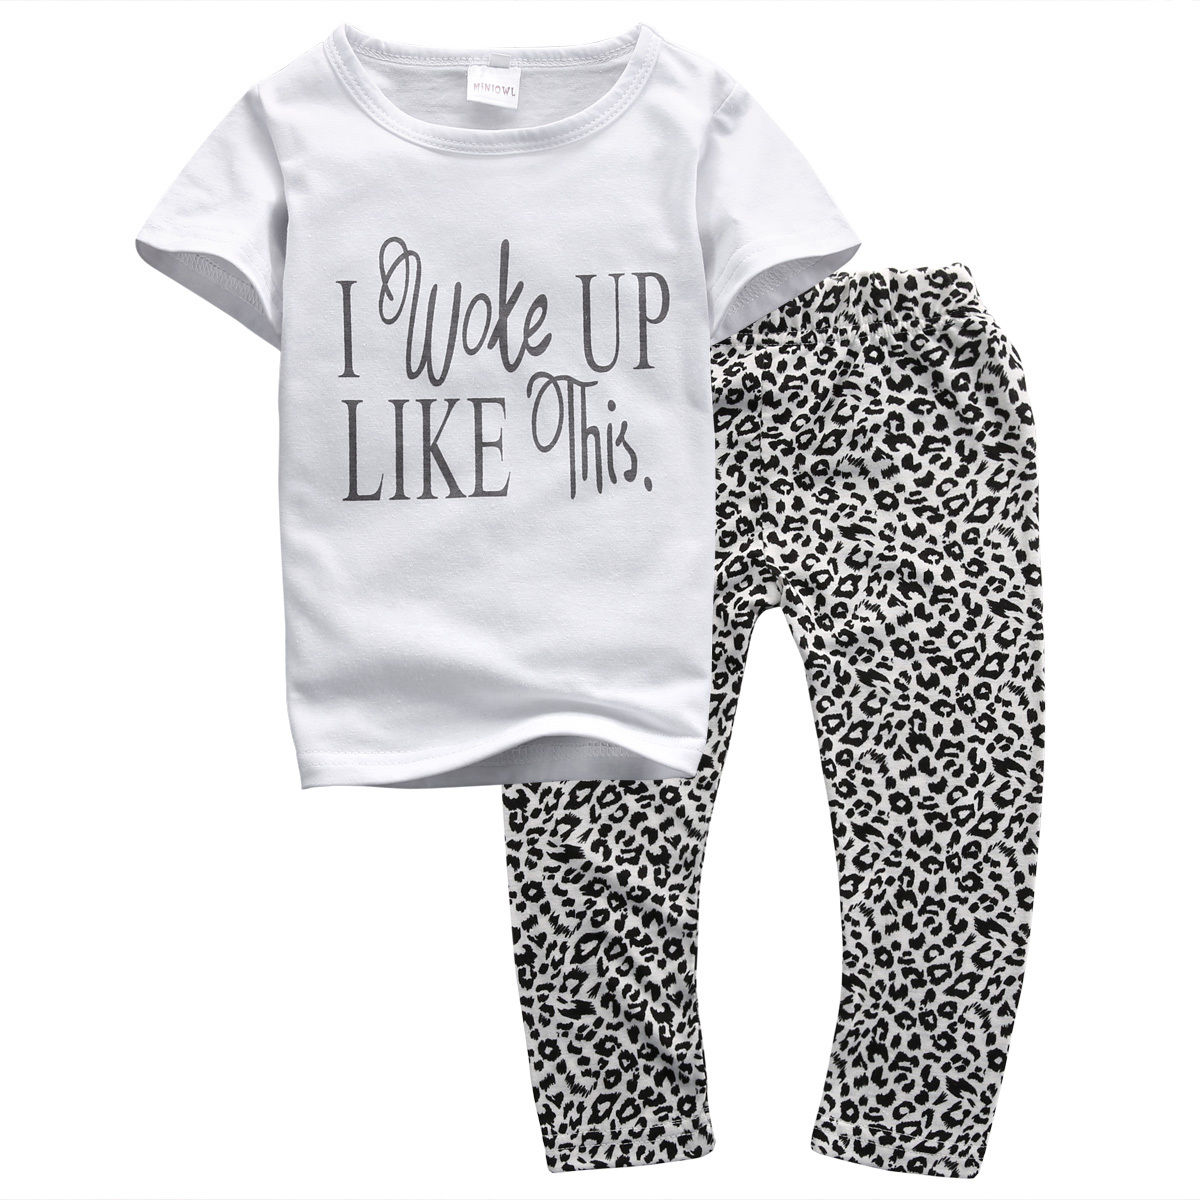 035723e331f I Woke Up Tops Long Pants 2PCS Set Toddler Kids Baby Girls Summer Outfits  Leopard Clothes T-shirt Infant Newborn Kid Girl